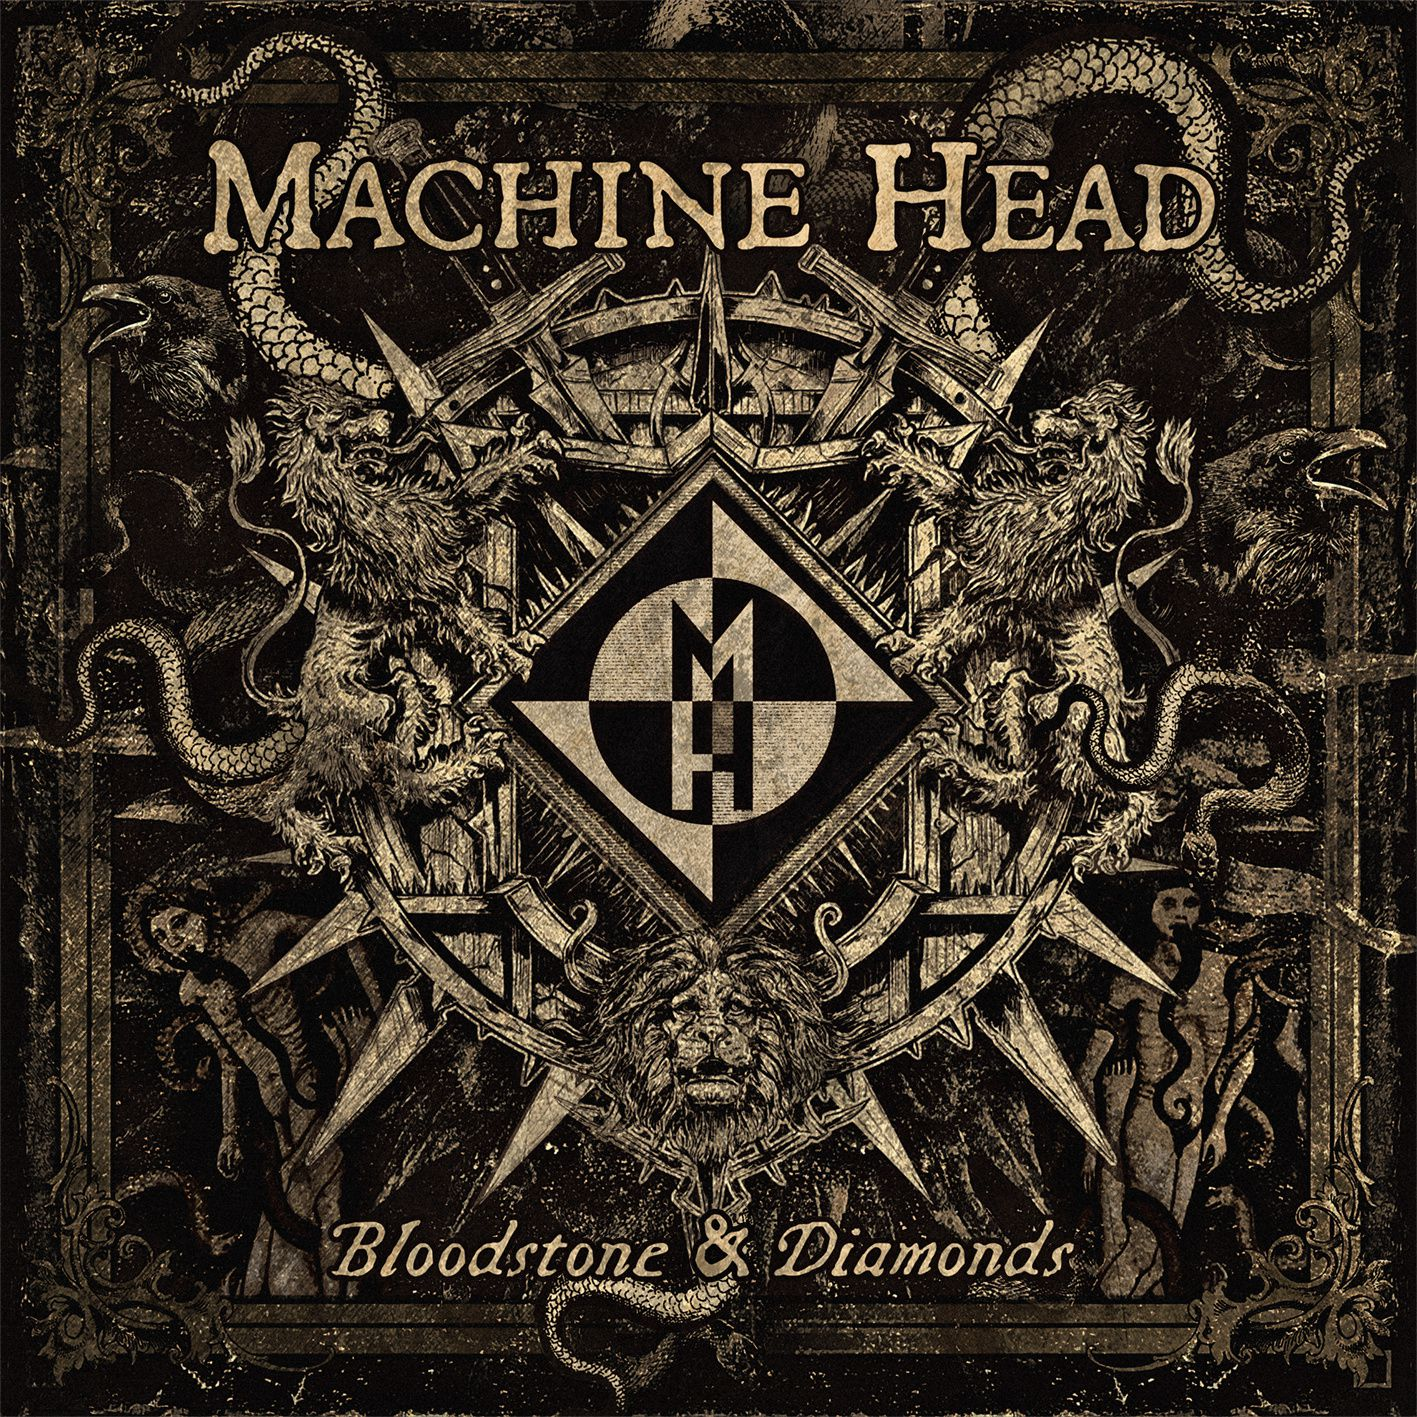 News from MACHINE HEAD - about the new album